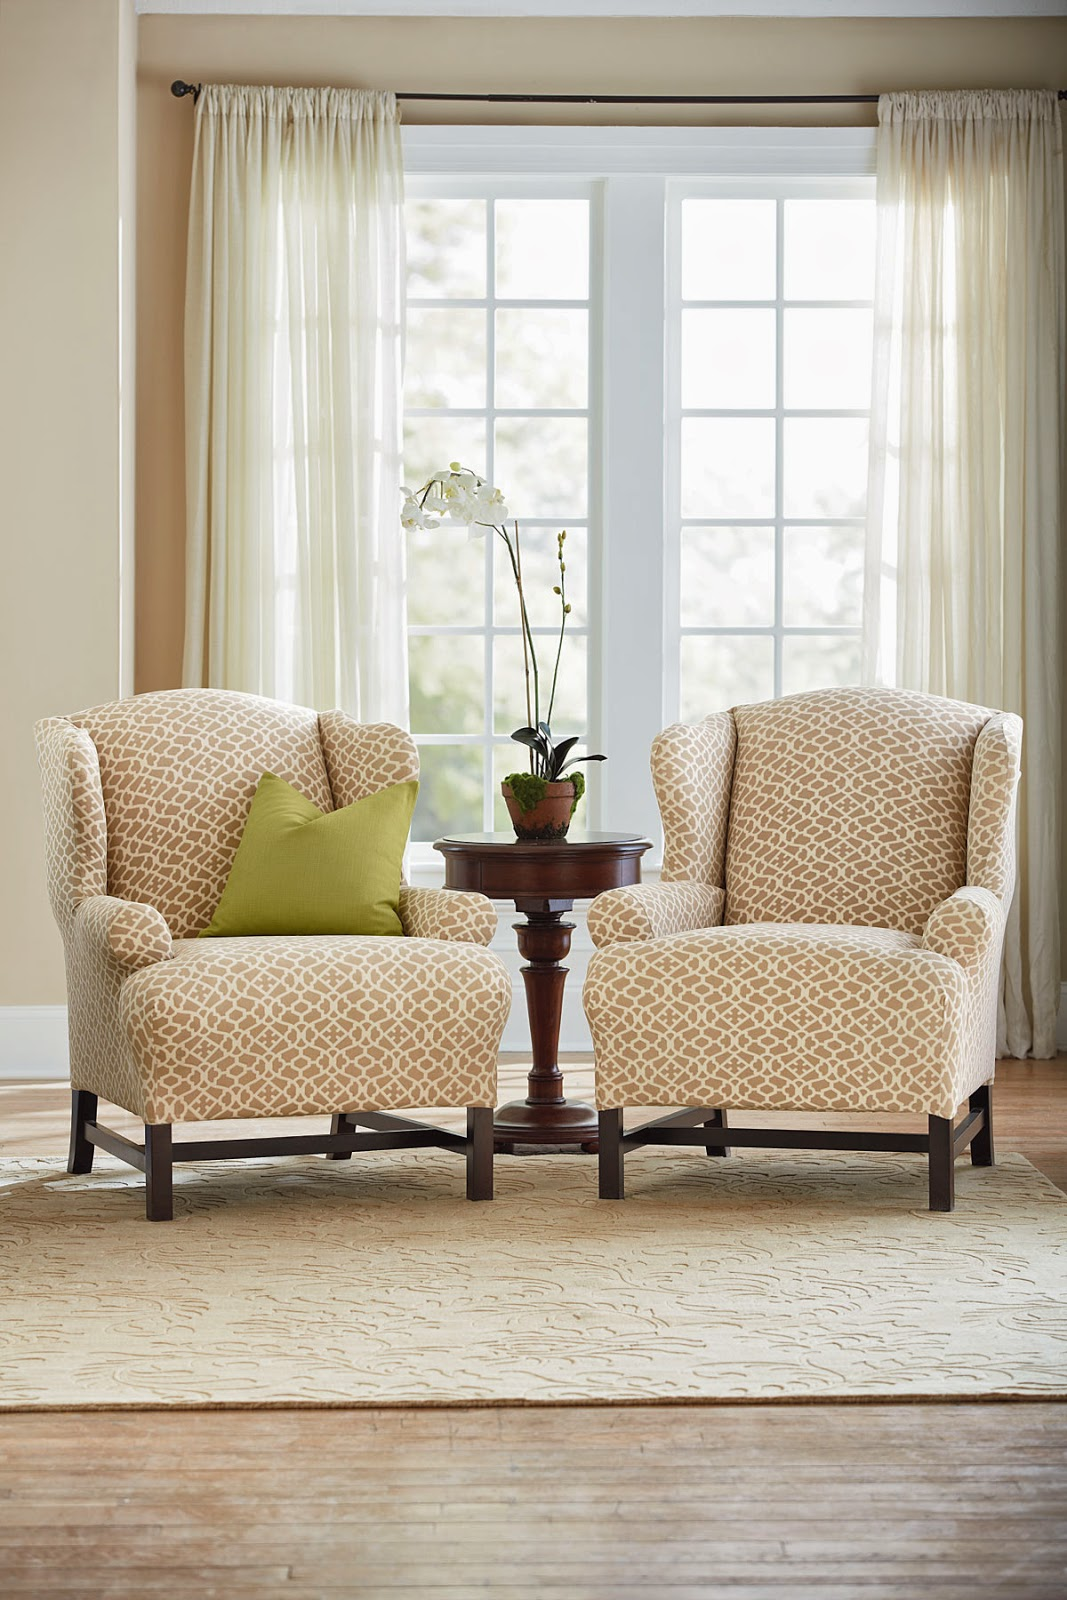 http://www.surefit.net/shop/categories/wing-chair-recliner-and-ottoman-slipcovers-wing-chairs/str-ironworks-wc.cfm?sku=41627&stc=0526100001